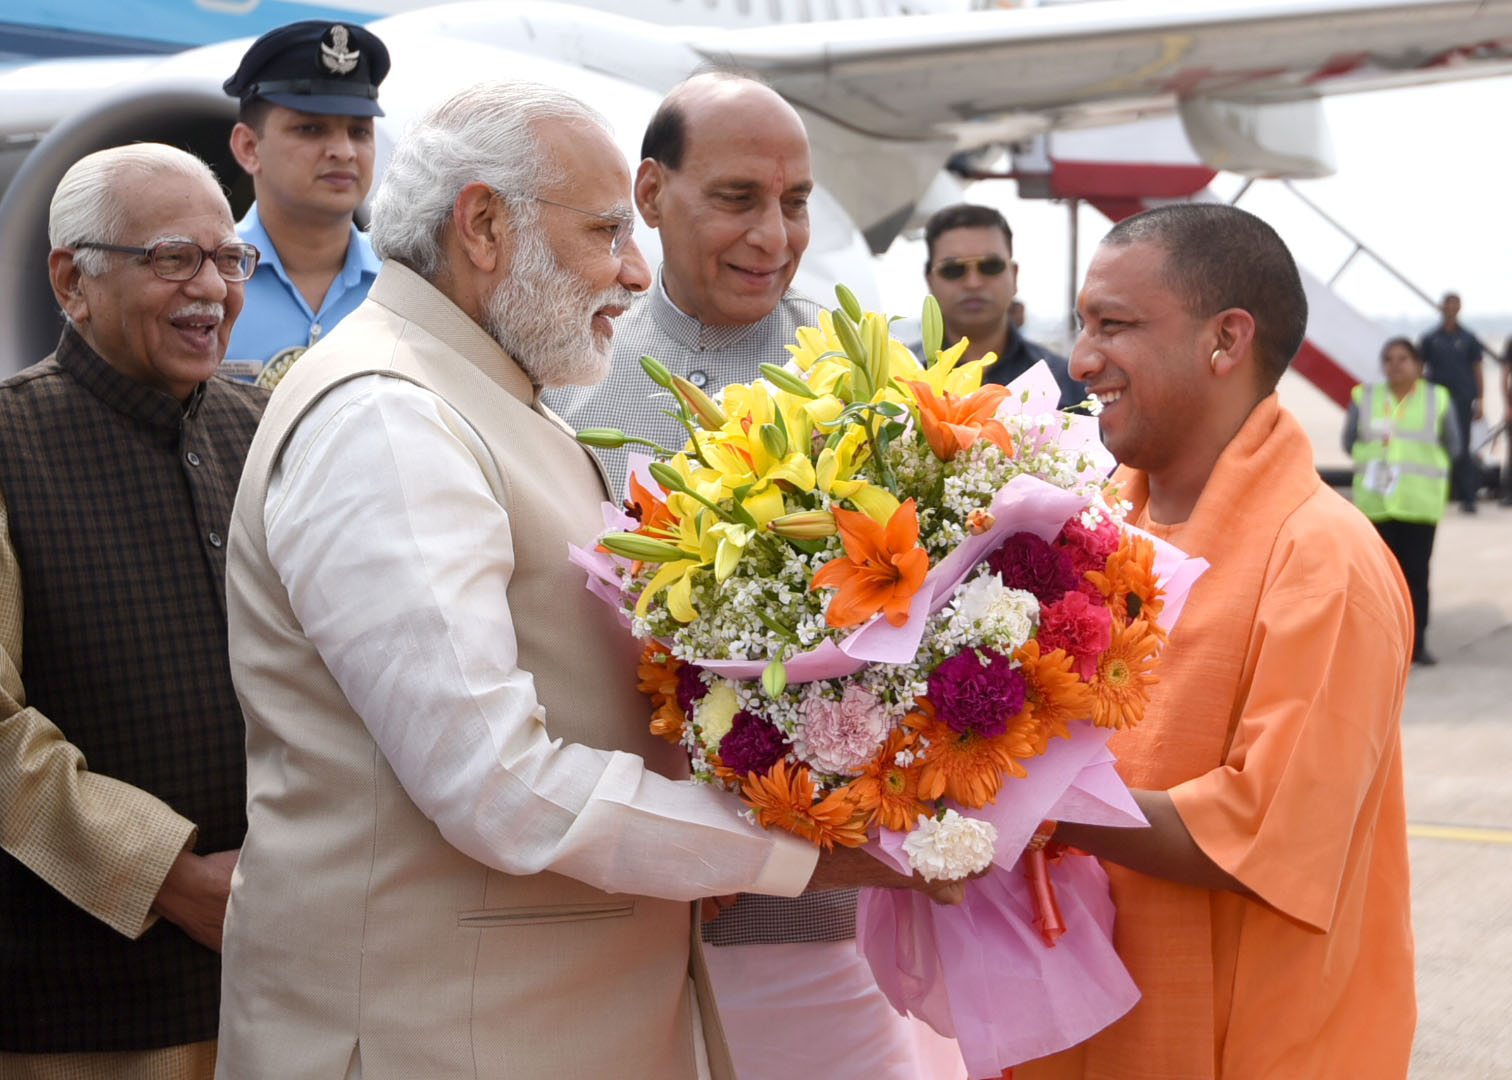 The Prime Minister, Shri Narendra Modi being received by the Governor of Uttar Pradesh, Shri Ram Naik, the Union Home Minister, Shri Rajnath Singh and the Uttar Pradesh Chief Minister designate Yogi Adityanath, on his arrival, at Lucknow, Uttar Pradesh on March 19, 2017.